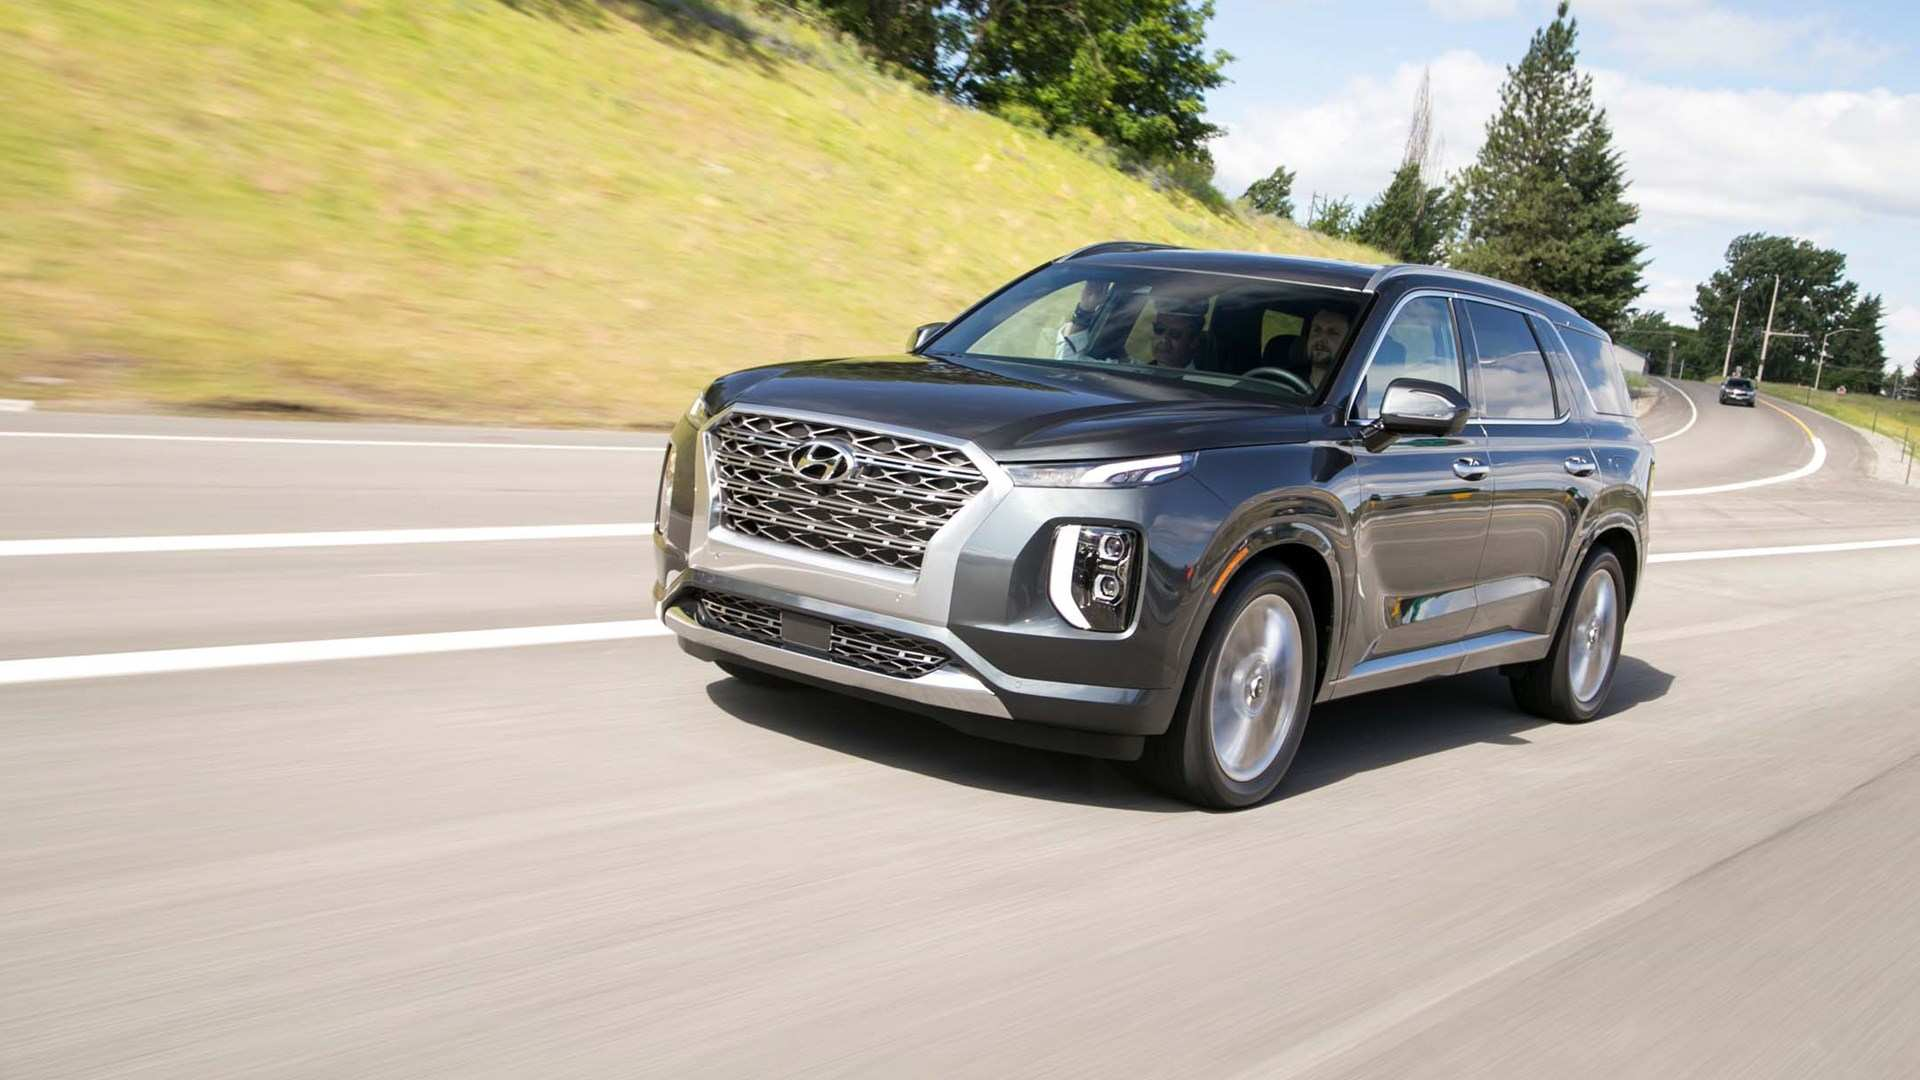 58 Best Review 2020 Hyundai Palisade Review Price for 2020 Hyundai Palisade Review